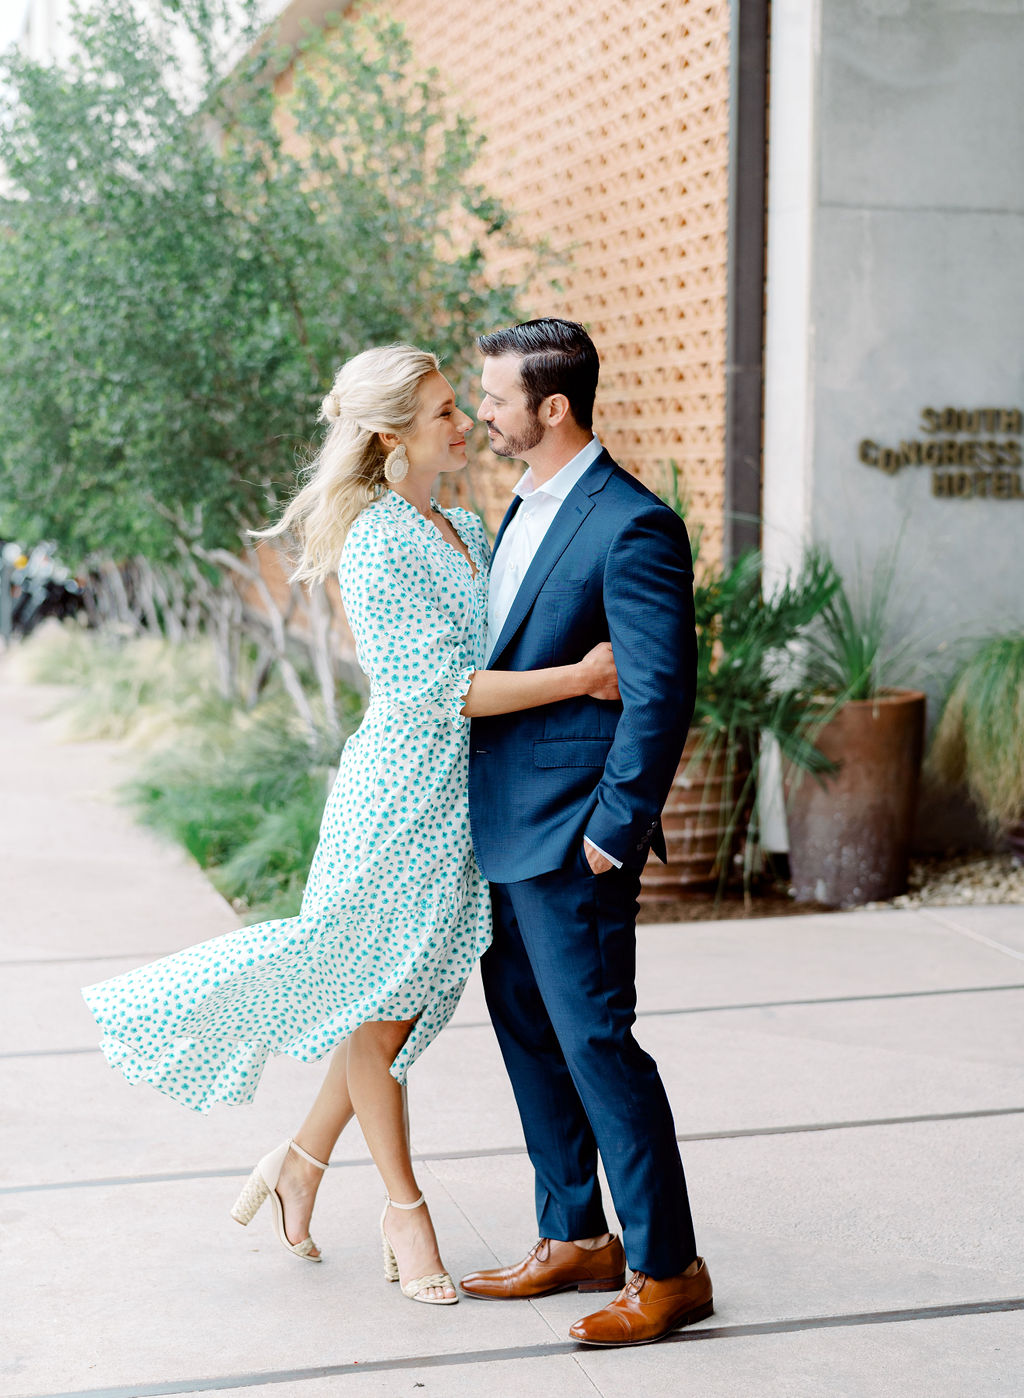 Austin-Elopement-Intimate-Wedding-Photographer-South-Congress-Hotel-Engagement-Session-20.jpg